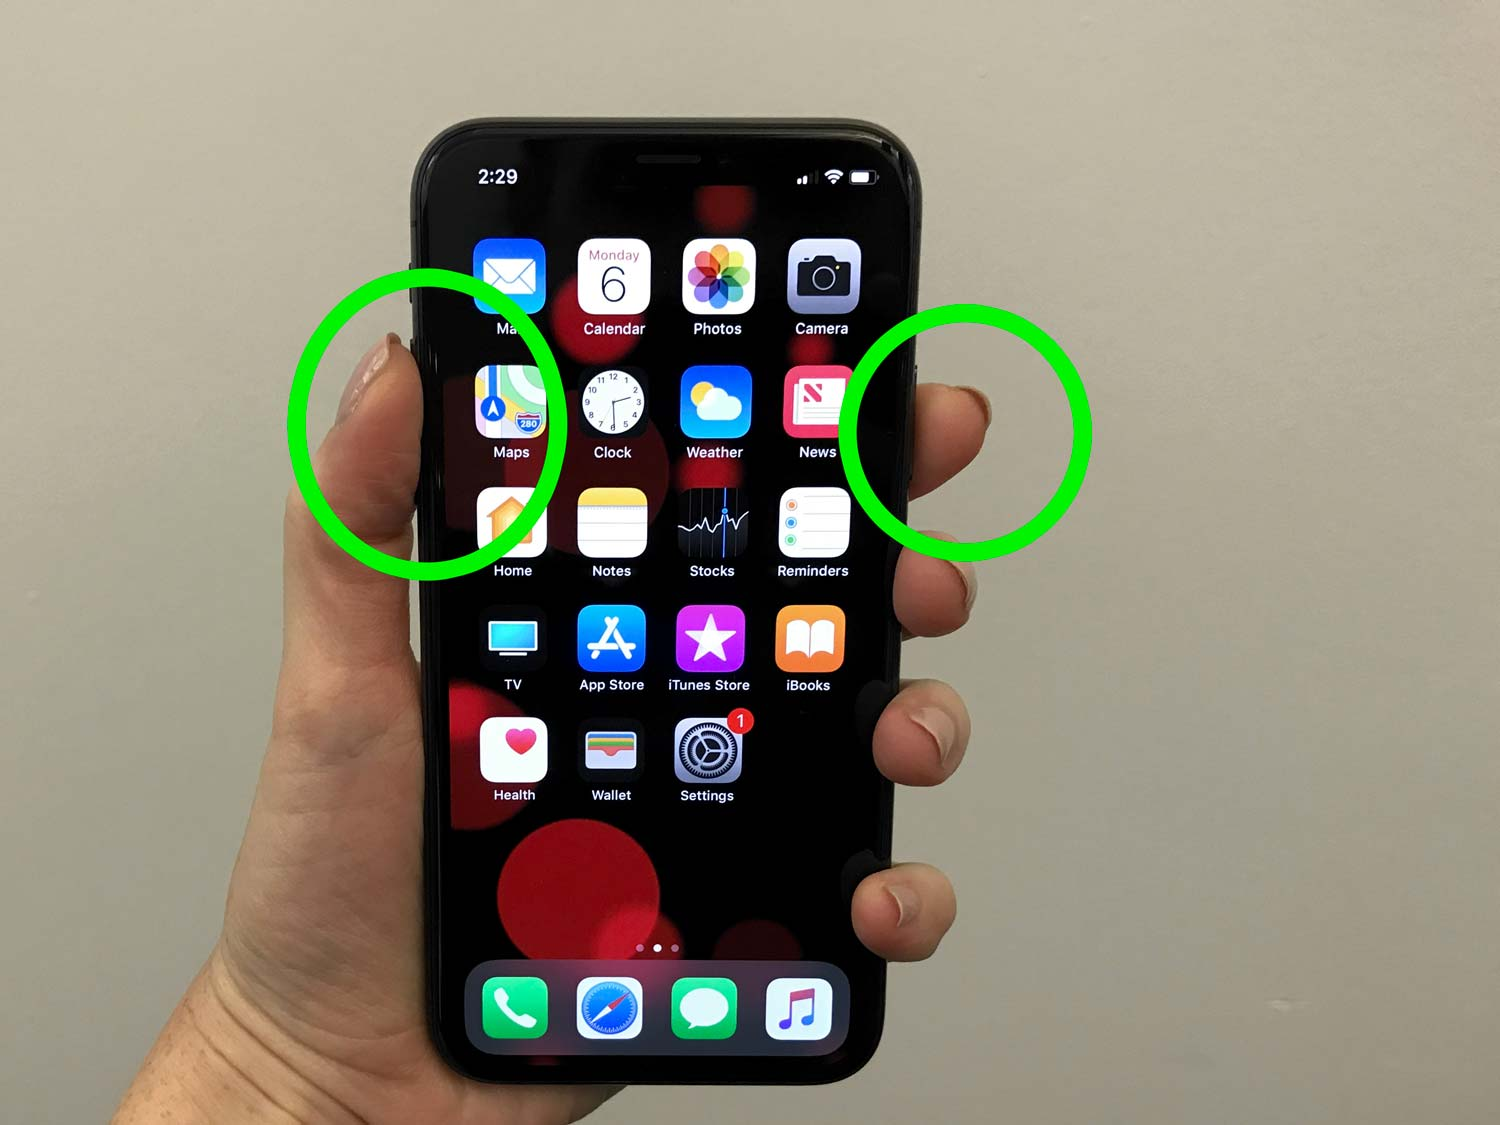 As Apple continues to remove physical buttons from its lineup of devices, taking a screenshot becomes a much tougher task as the button combinations continue to change.